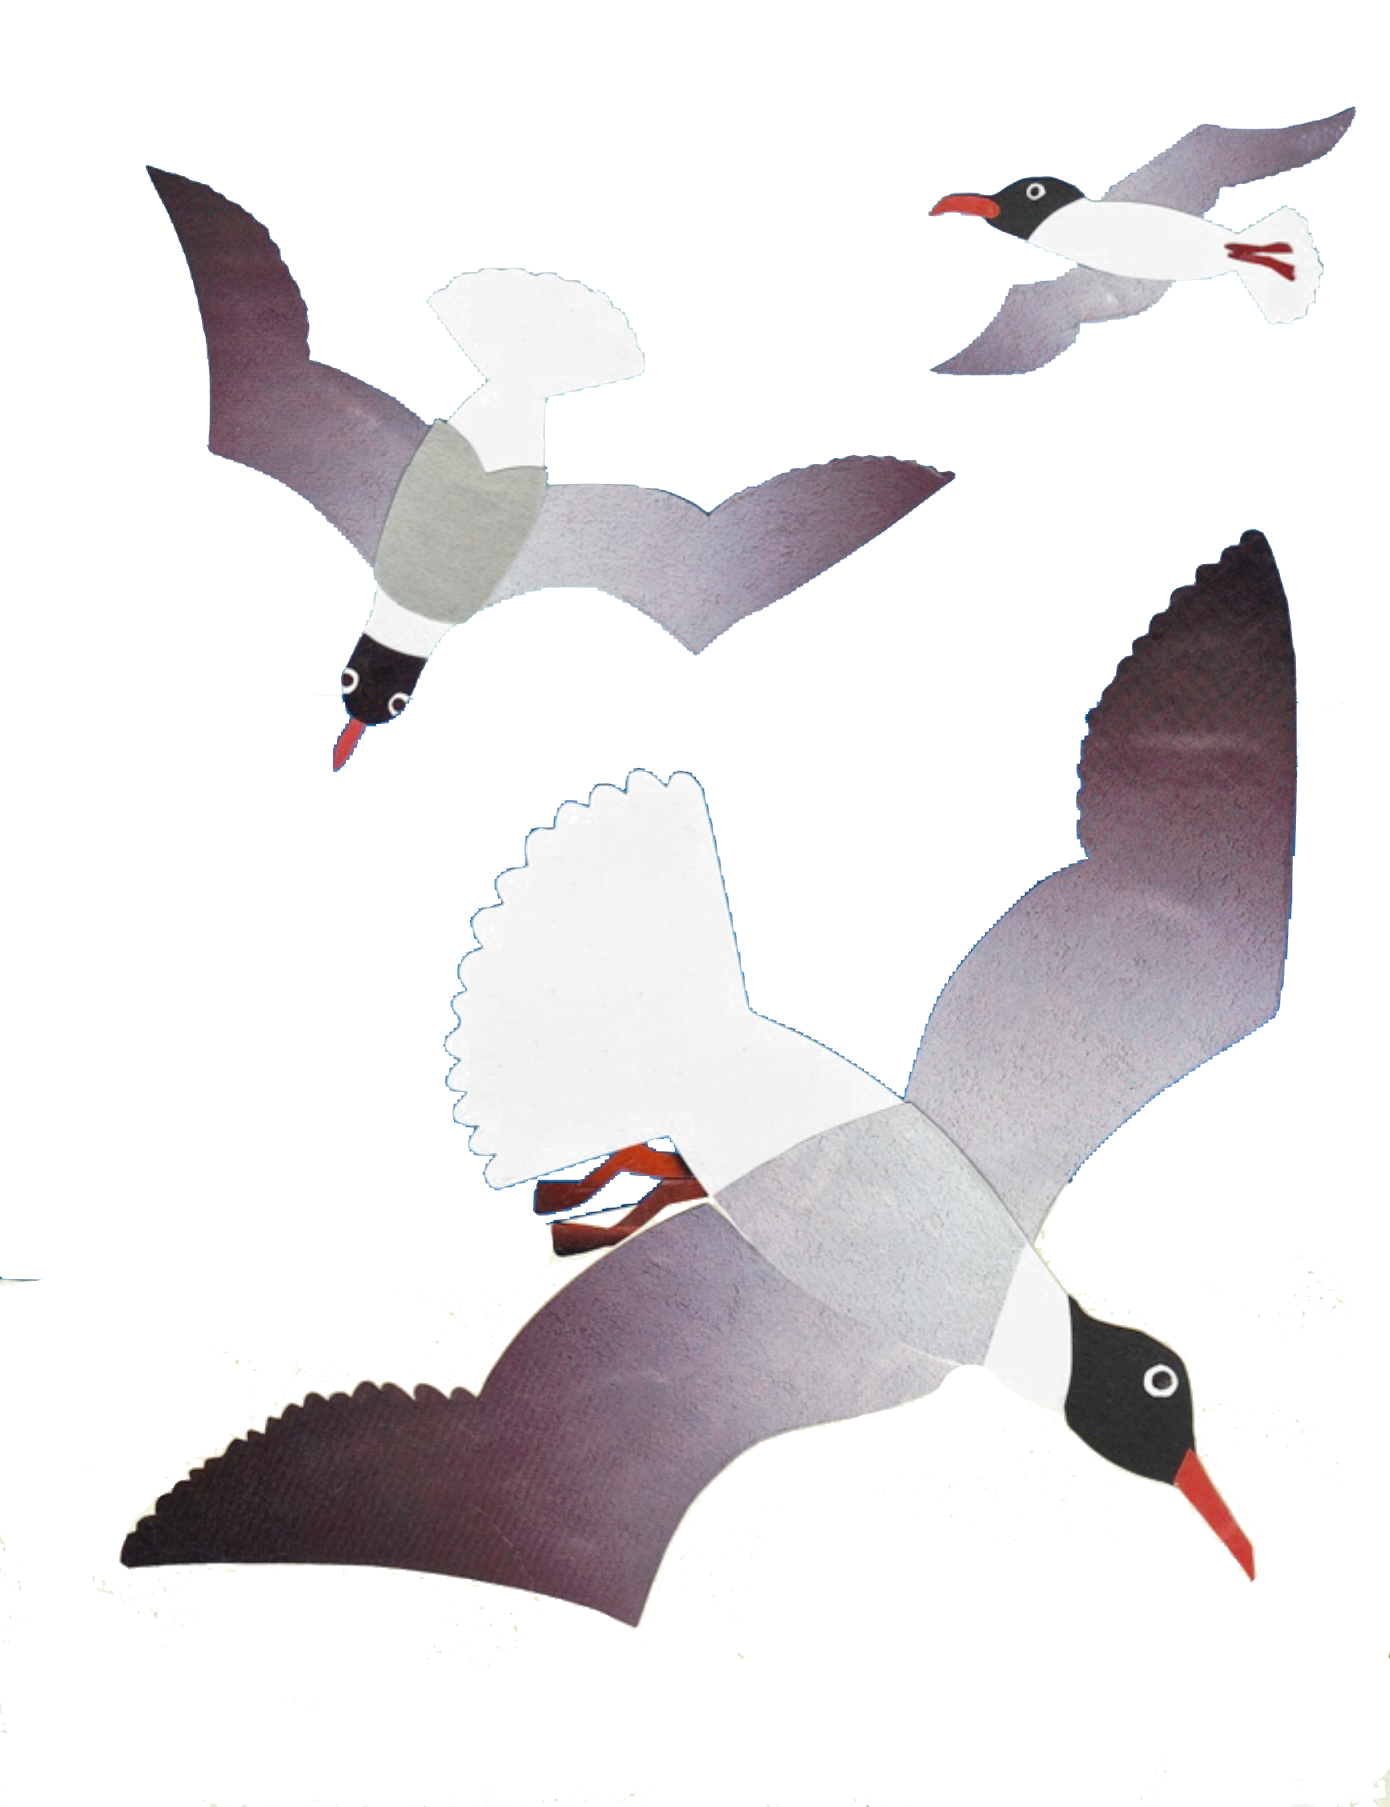 Laughing-gull-image-phillis.png